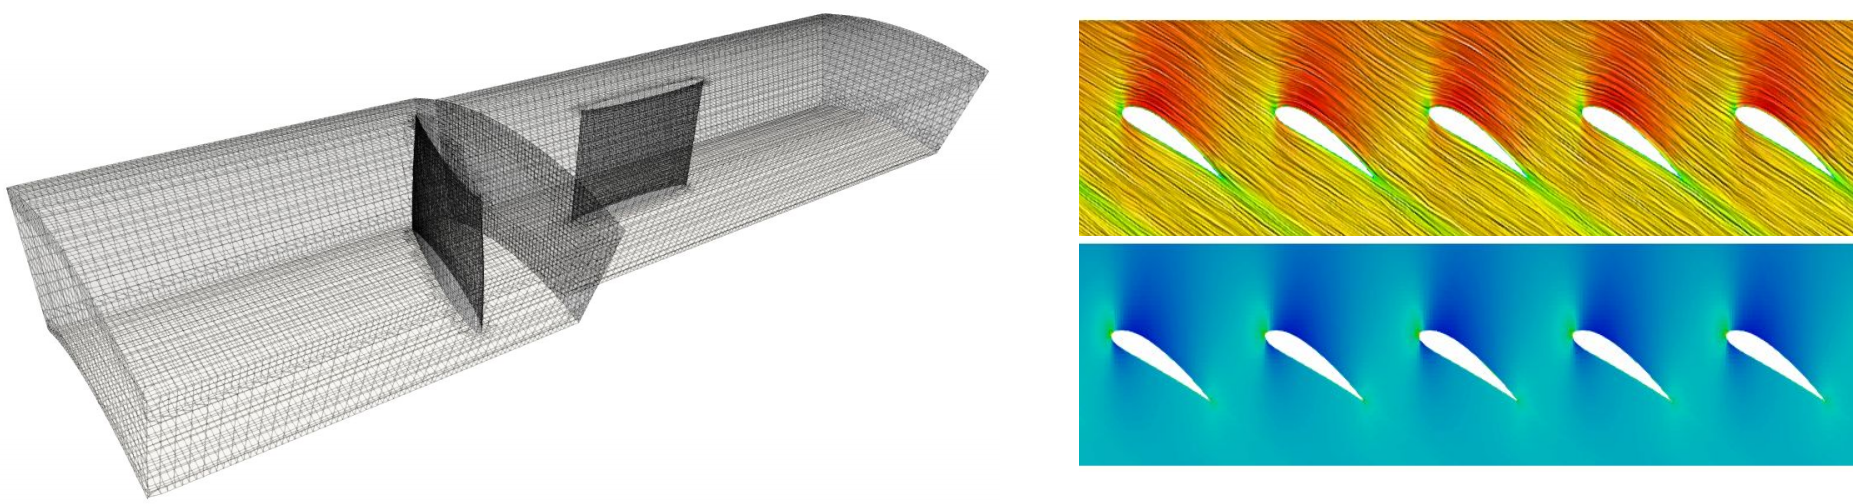 Automation of the axial fan meshing procedure and the CFD analysis